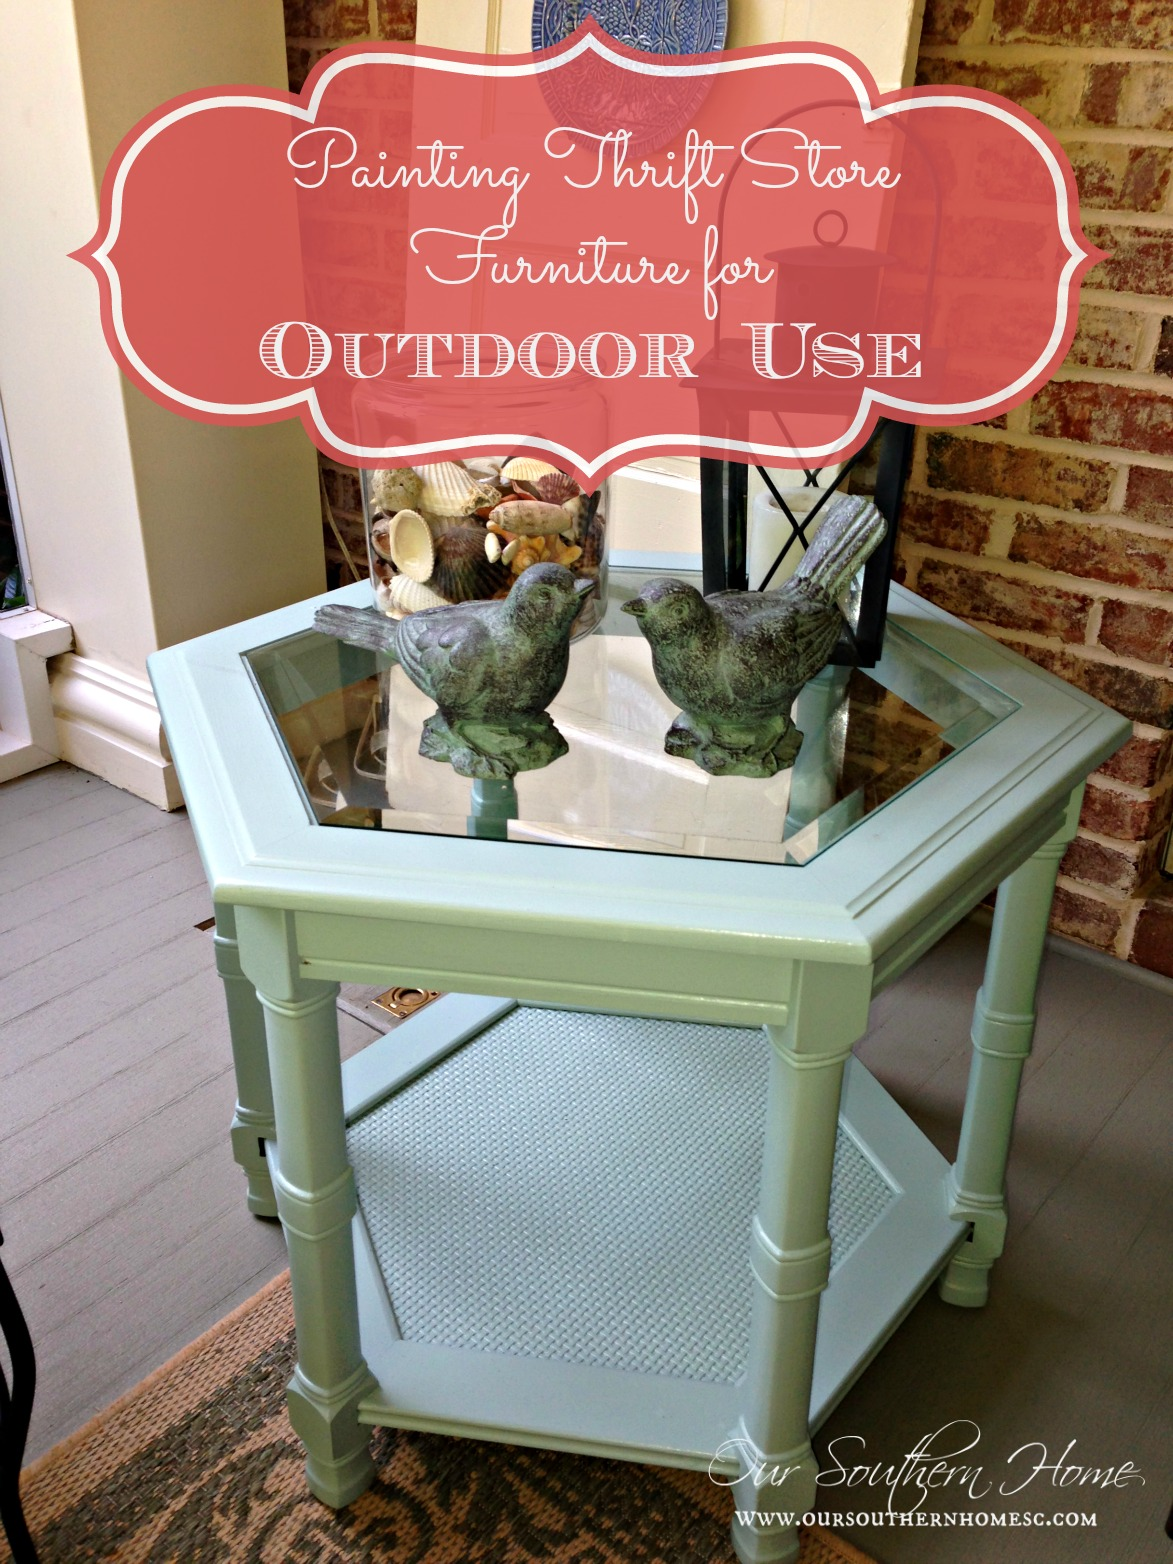 Painting outdoor furniture thrift store find our for Outdoor furniture paint